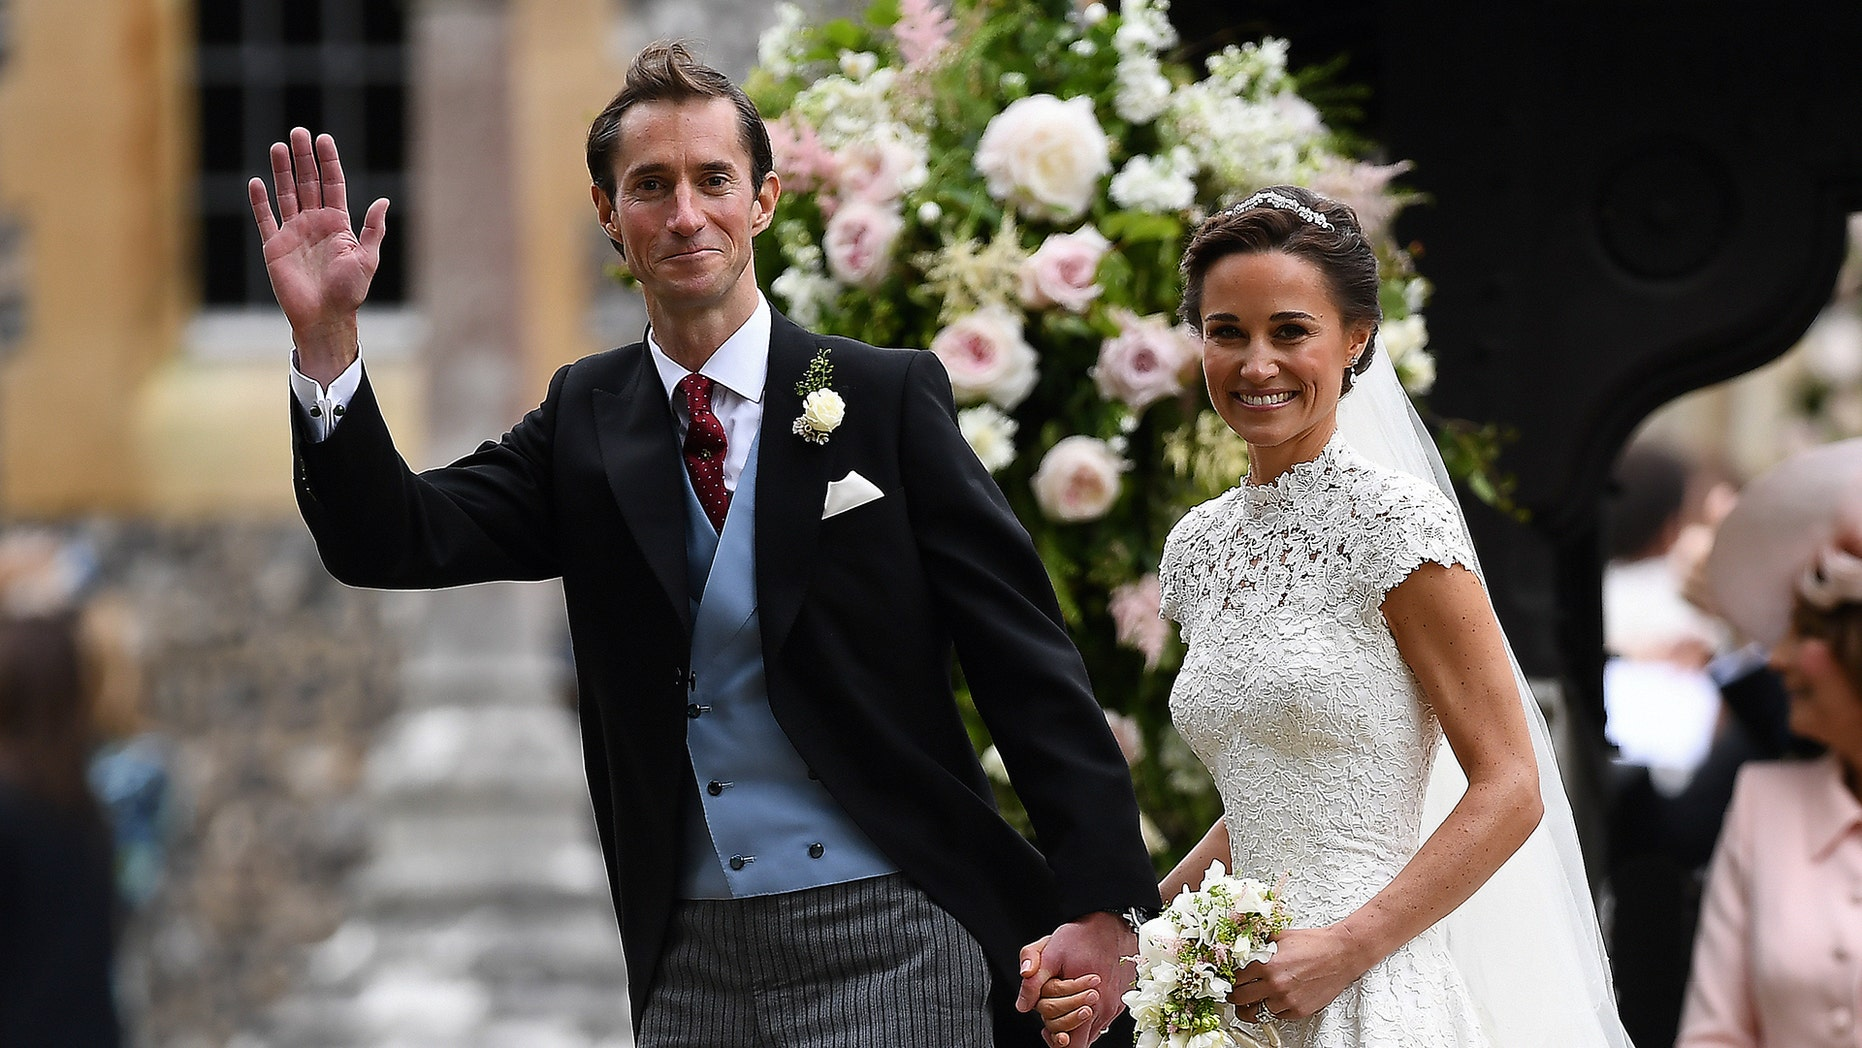 Pippa Middleton and her new husband, James Matthews, smile following their wedding ceremony at St Mark's Church in Englefield, west of London, on May 20, 2017.